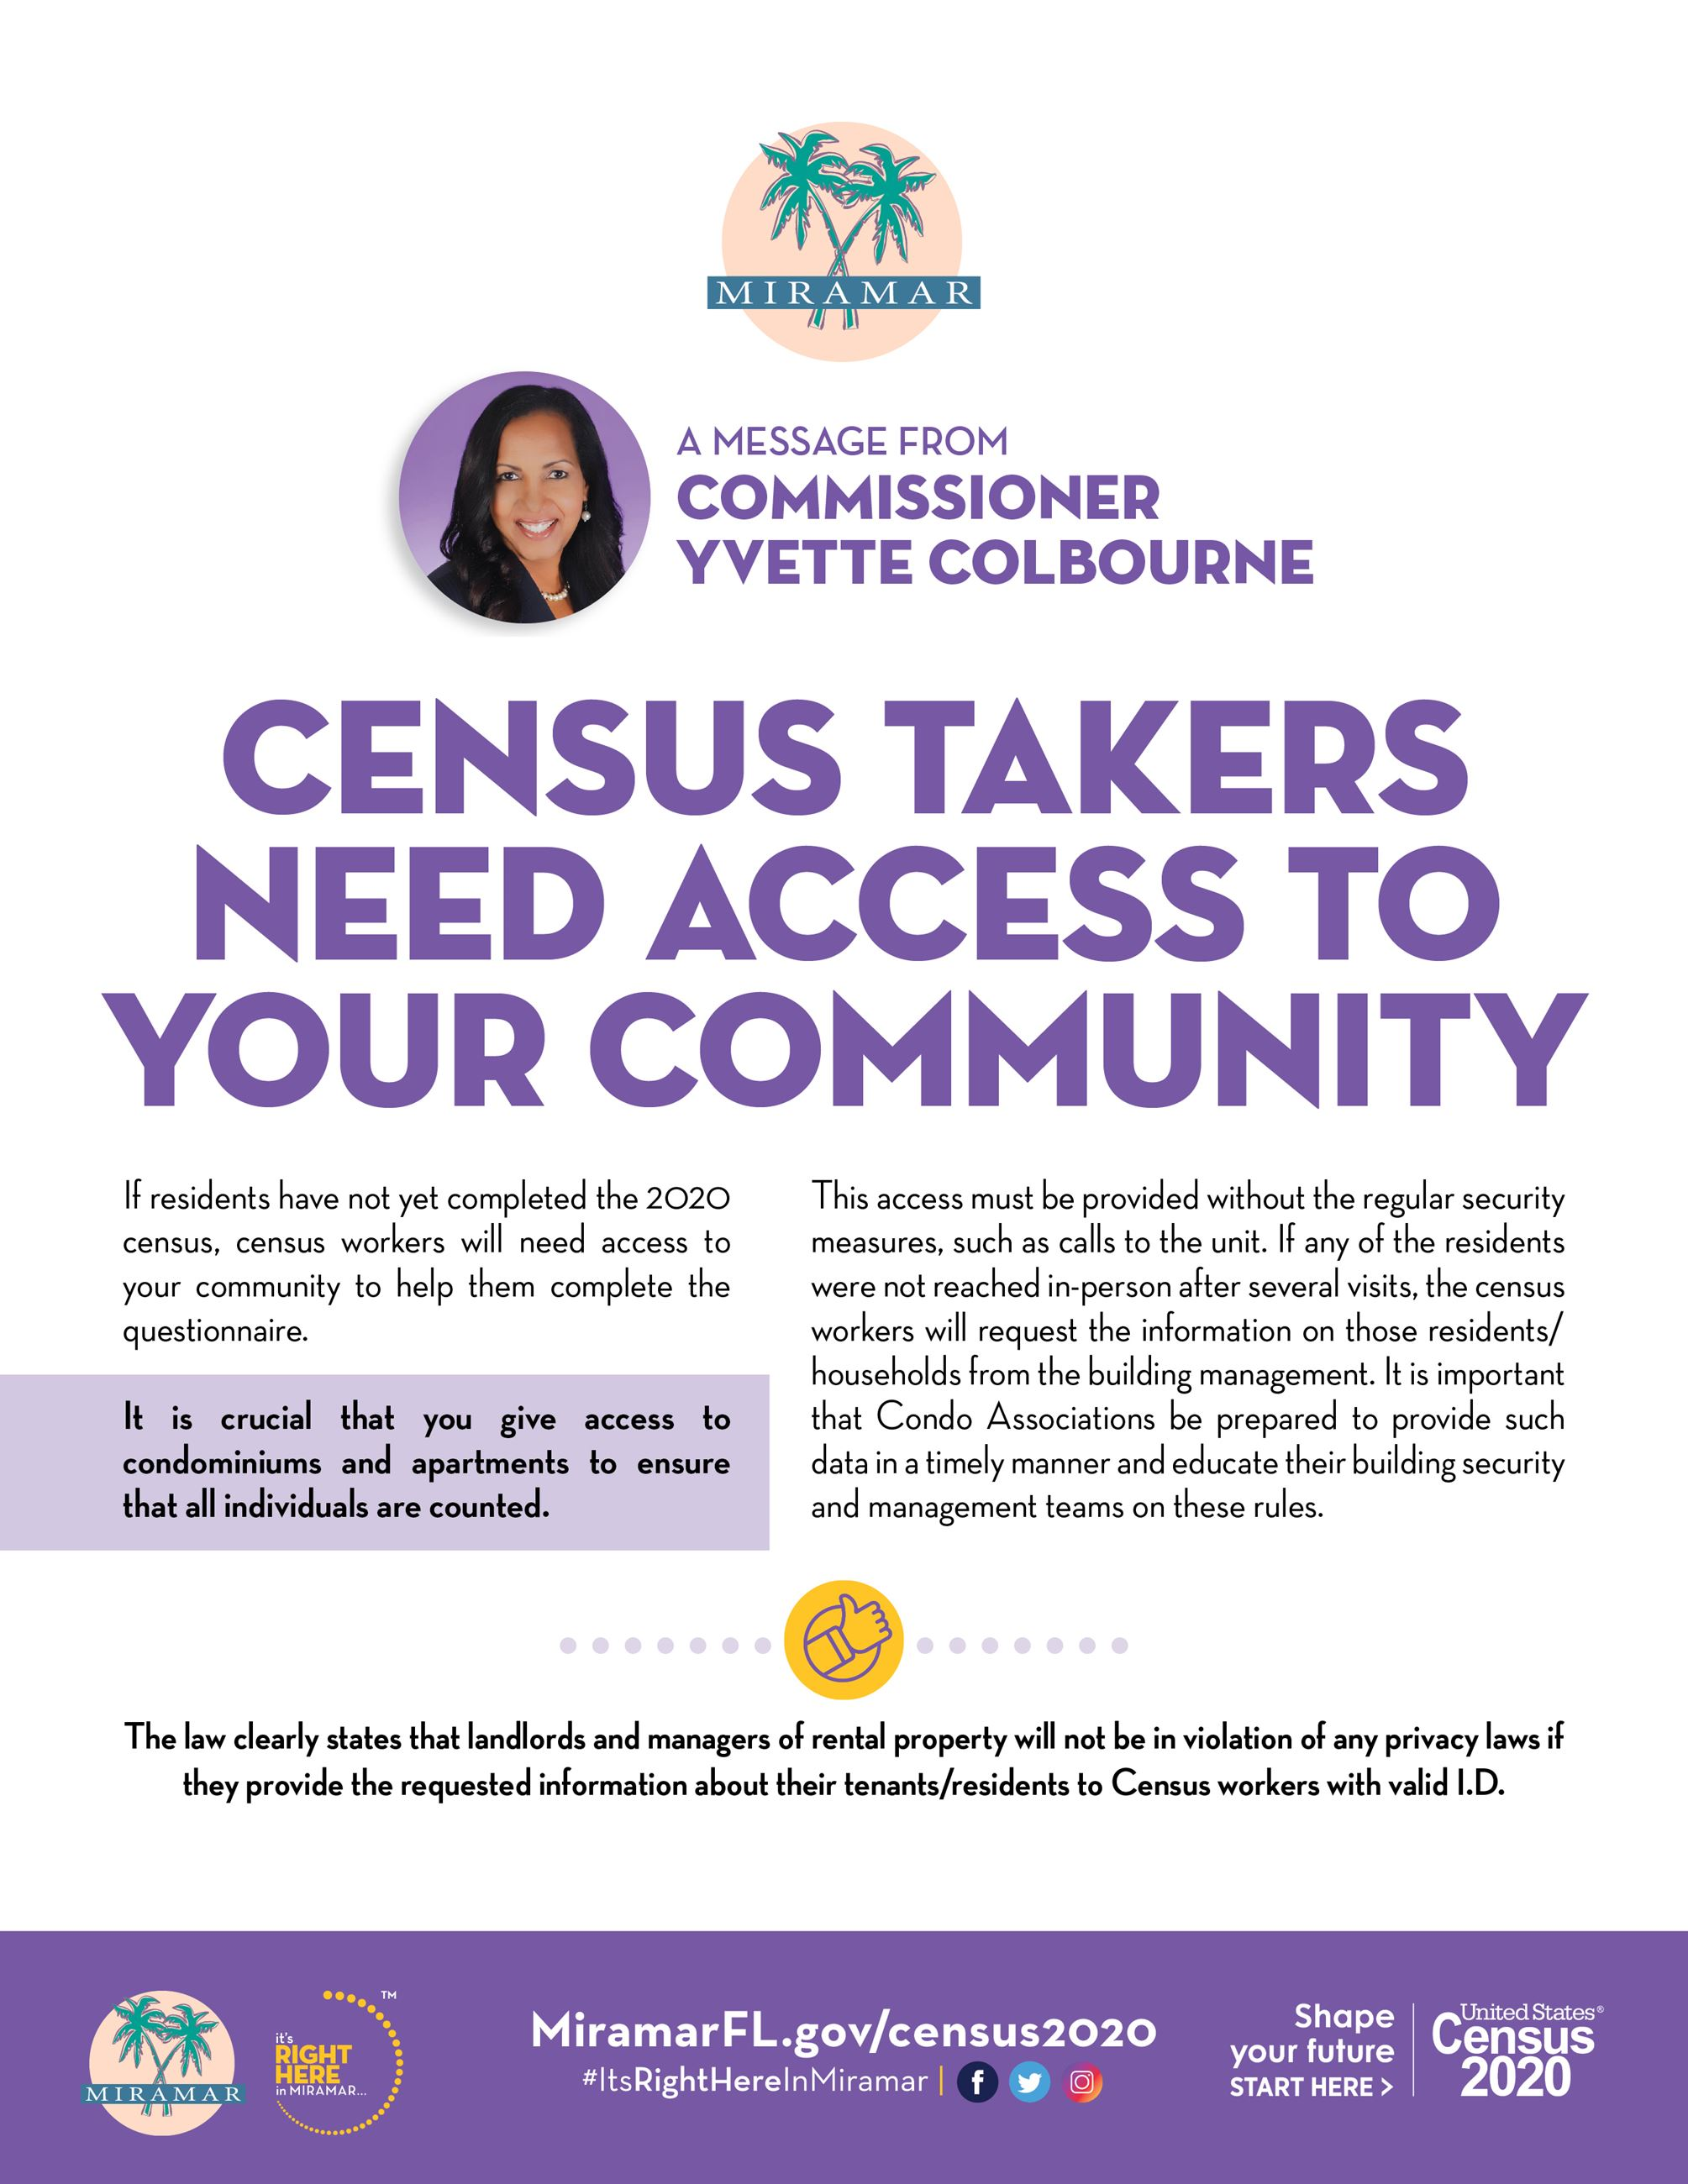 Census 2020 Community Message from Commissioner Yvette Colbourne